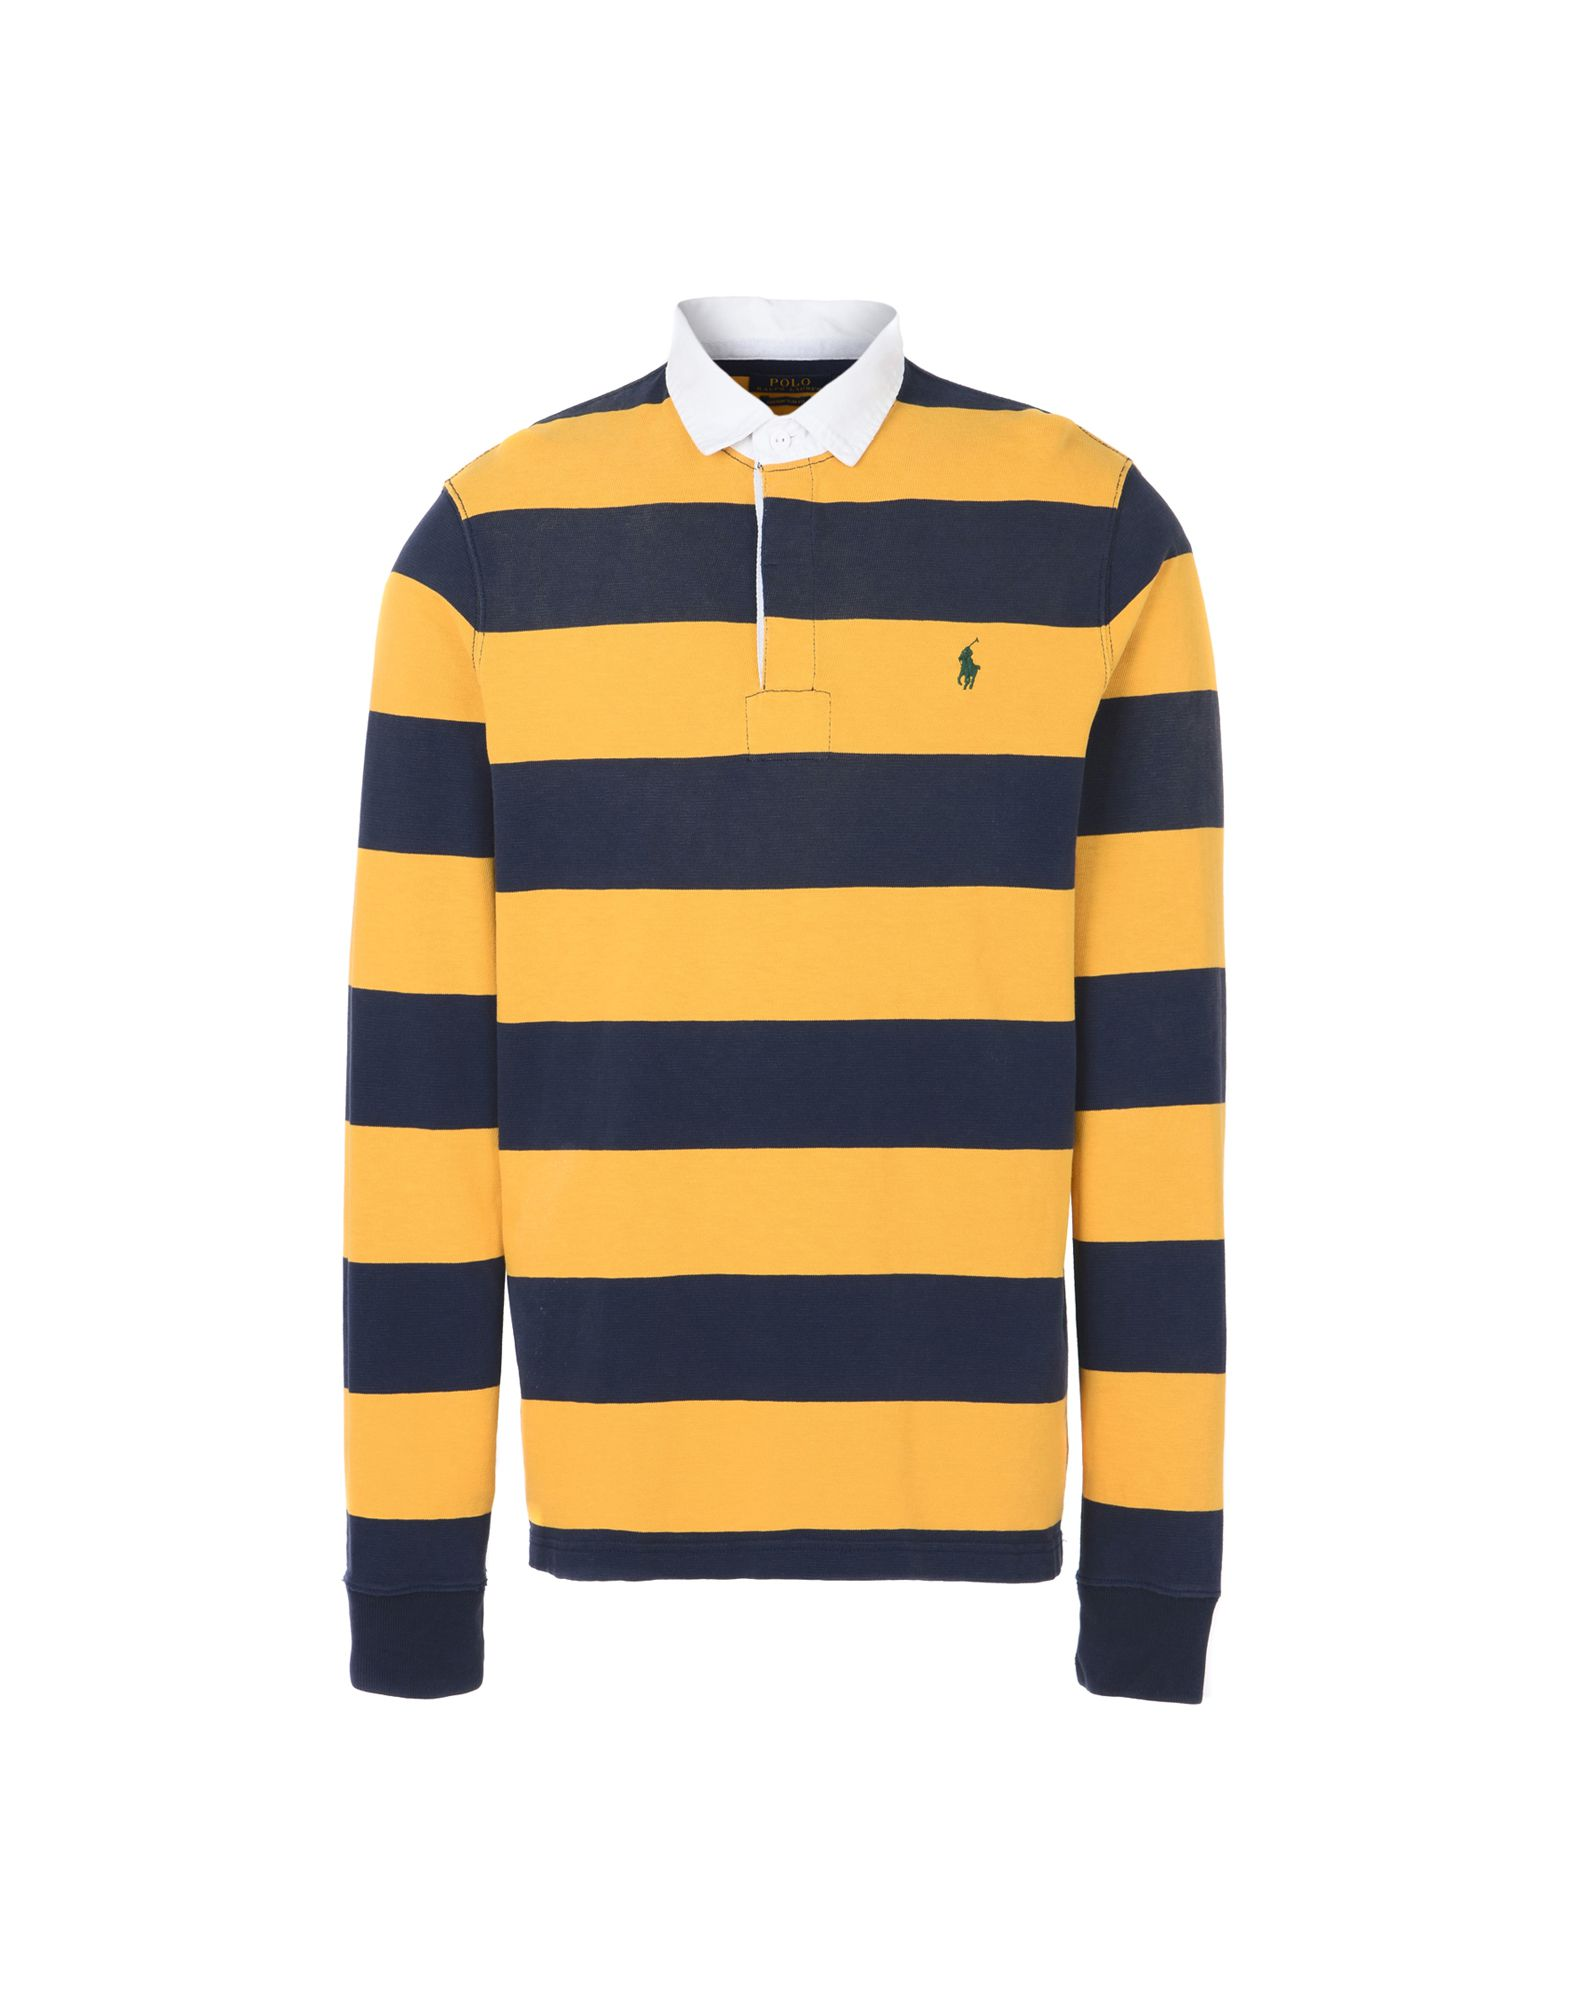 Polo Polo Ralph Lauren The Iconic Rugby Shirt - Uomo - Acquista online su